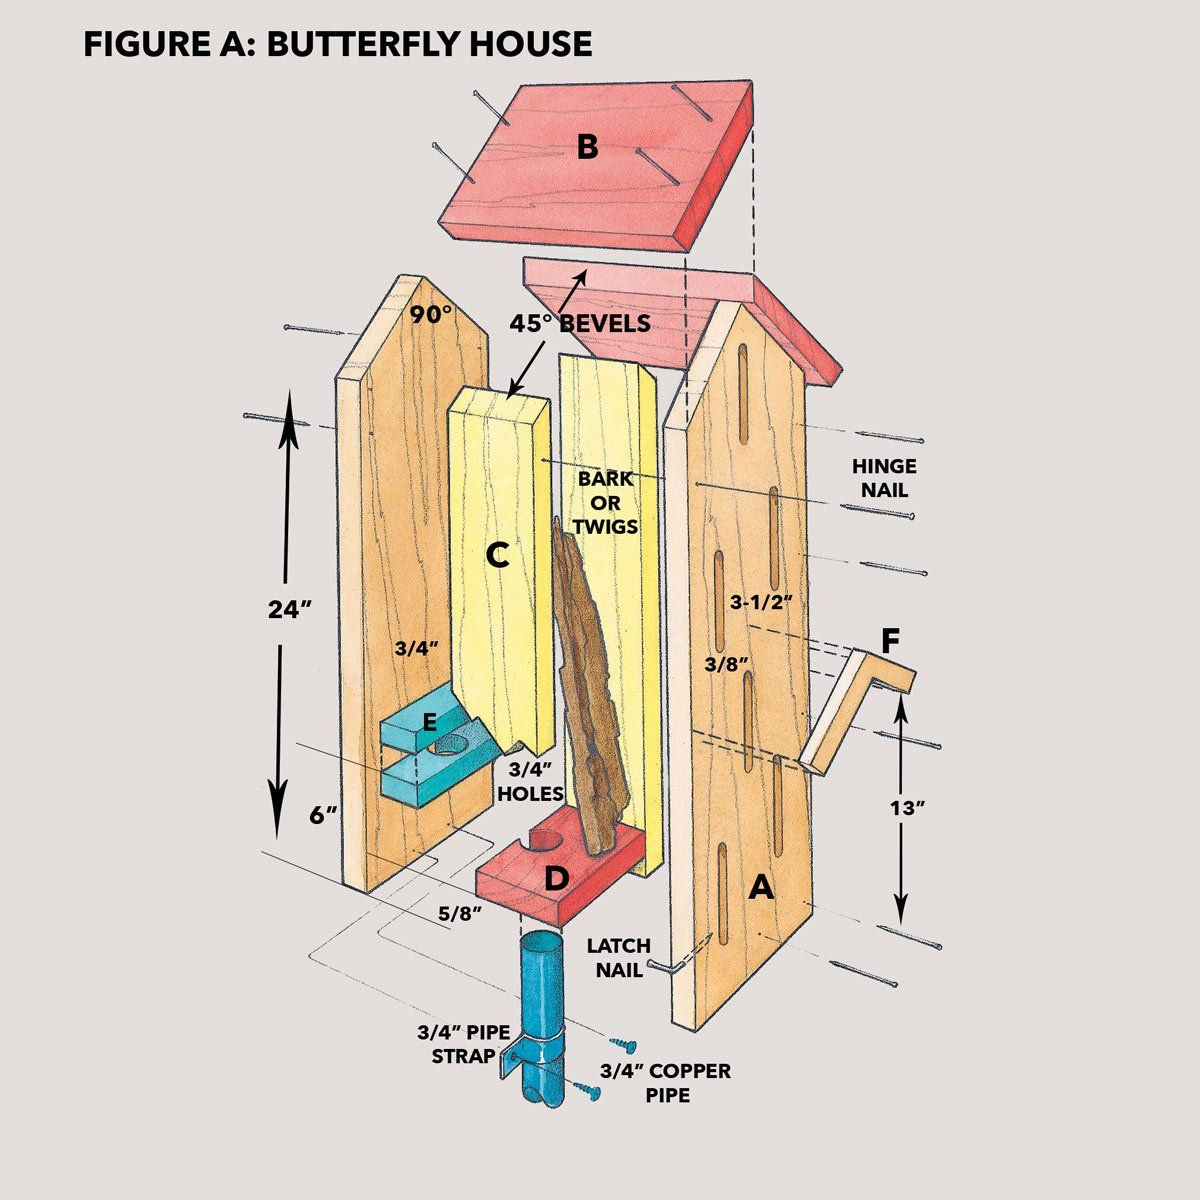 61be24f23a278d6c9e46ba193777bfbf Plans For Erfly House on models for houses, ideas for houses, blueprints for houses, agents for houses, documents for houses, lanterns for houses, patterns for houses, elevations for houses, construction for houses, swing for houses, details for houses, services for houses, budget for houses, materials for houses, rules for houses, architecture for houses, drawings for houses, forms for houses, kits for houses, trends for houses,